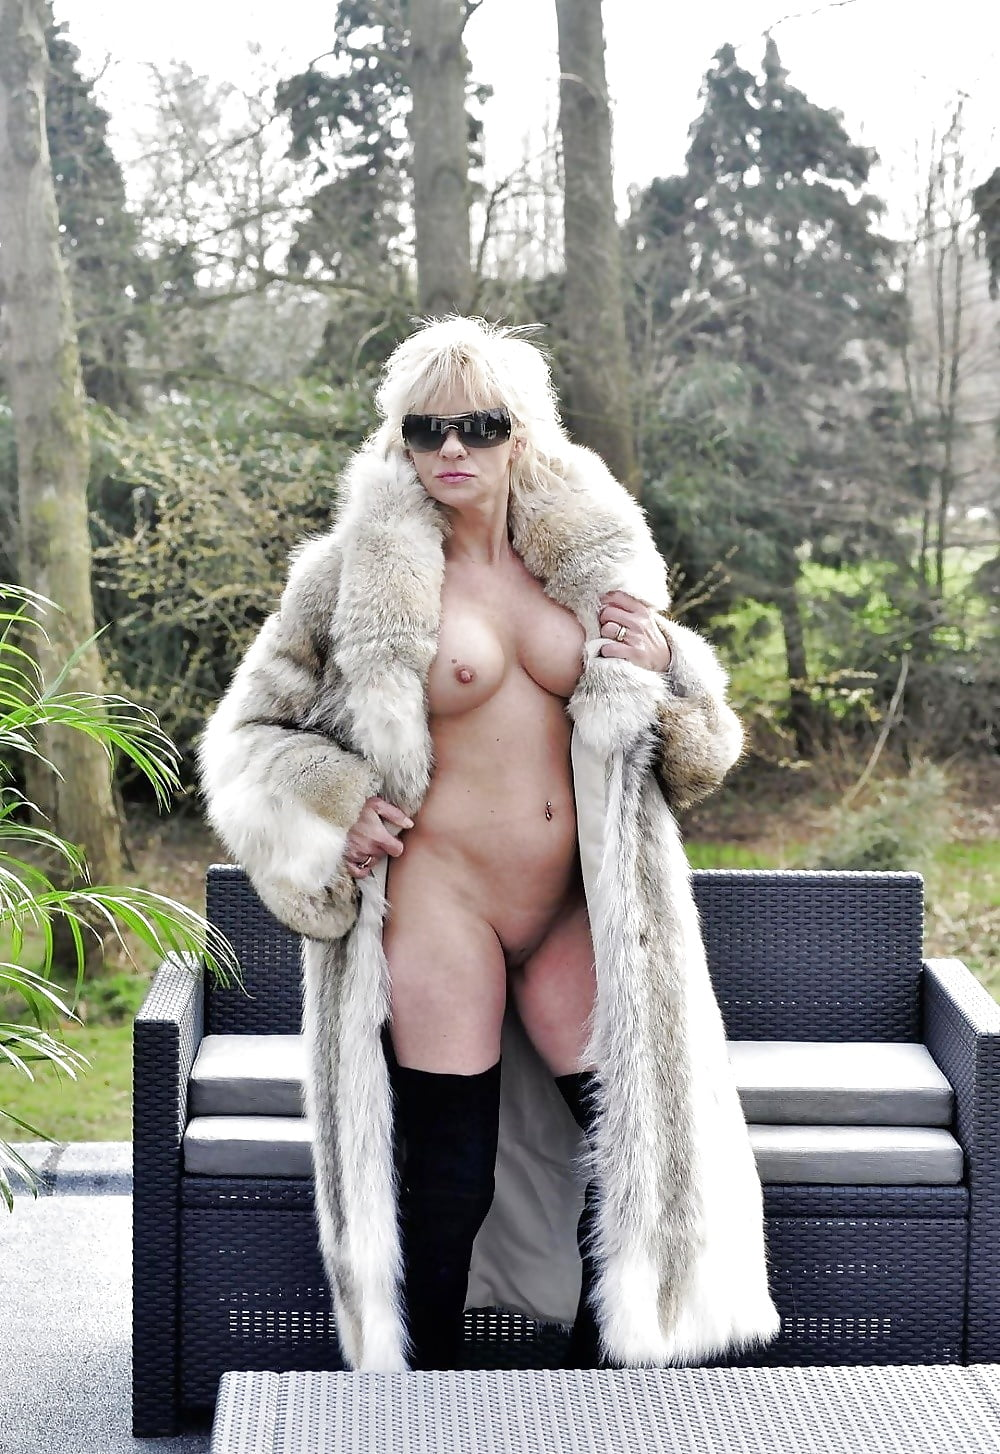 Nude in fur porn, cute girl in dress has sex